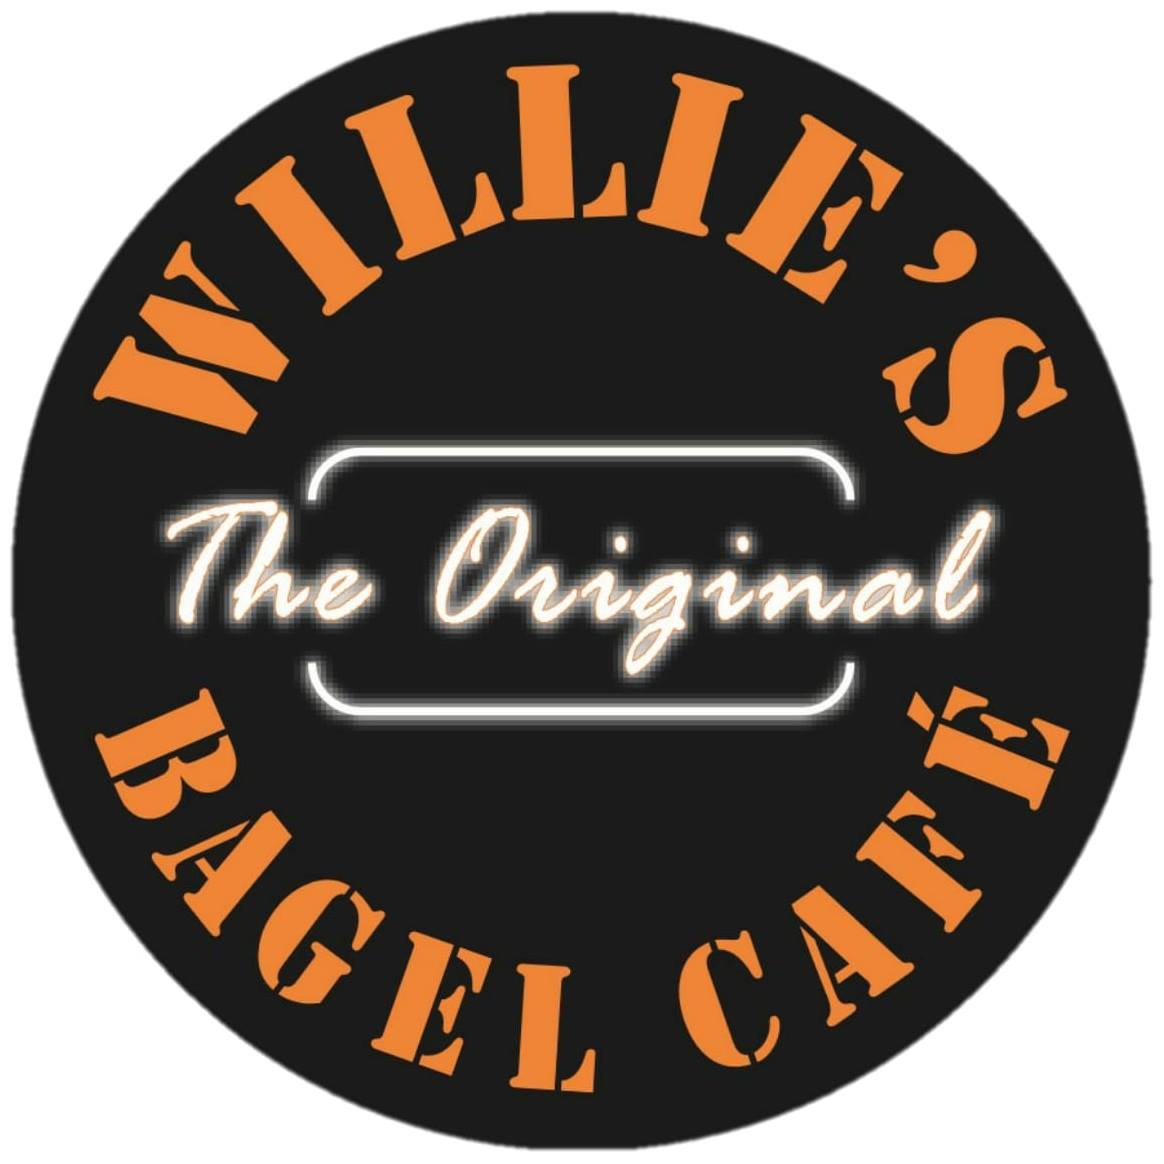 Willies Bagel Cafe